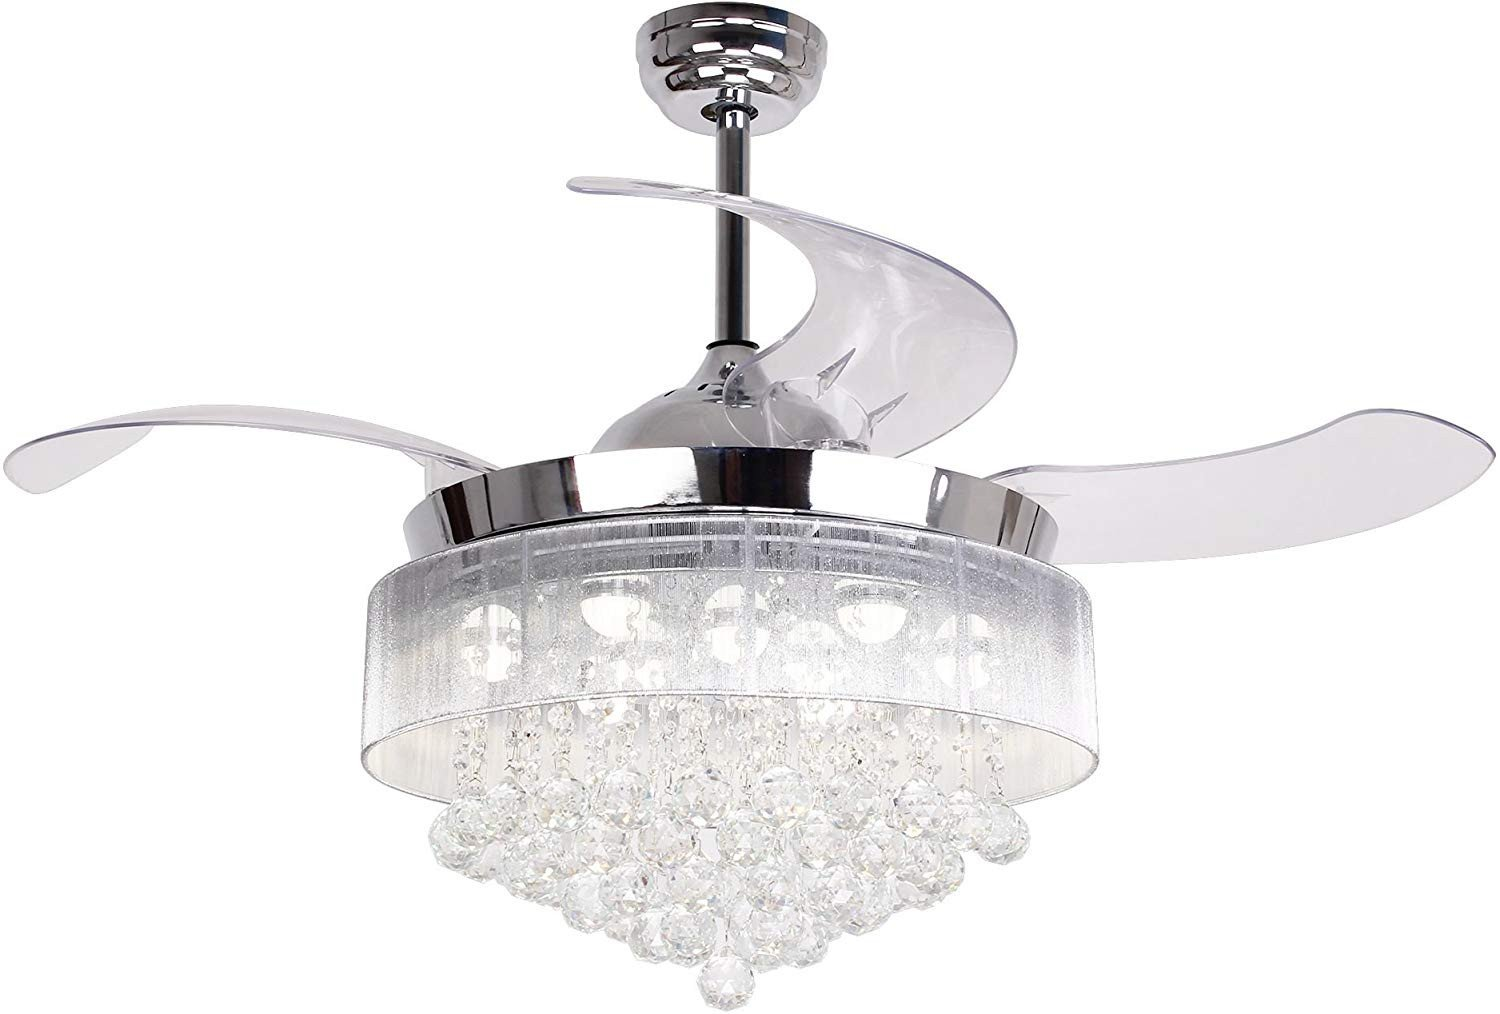 Kids Bedroom Ceiling Light Lovely Ceiling Fans with Led Lights 46 Inch Ceiling Fan with Remote Crystal Chandelier Fans with Retractable Blades Replaceable 4000k Cool White Lights Not